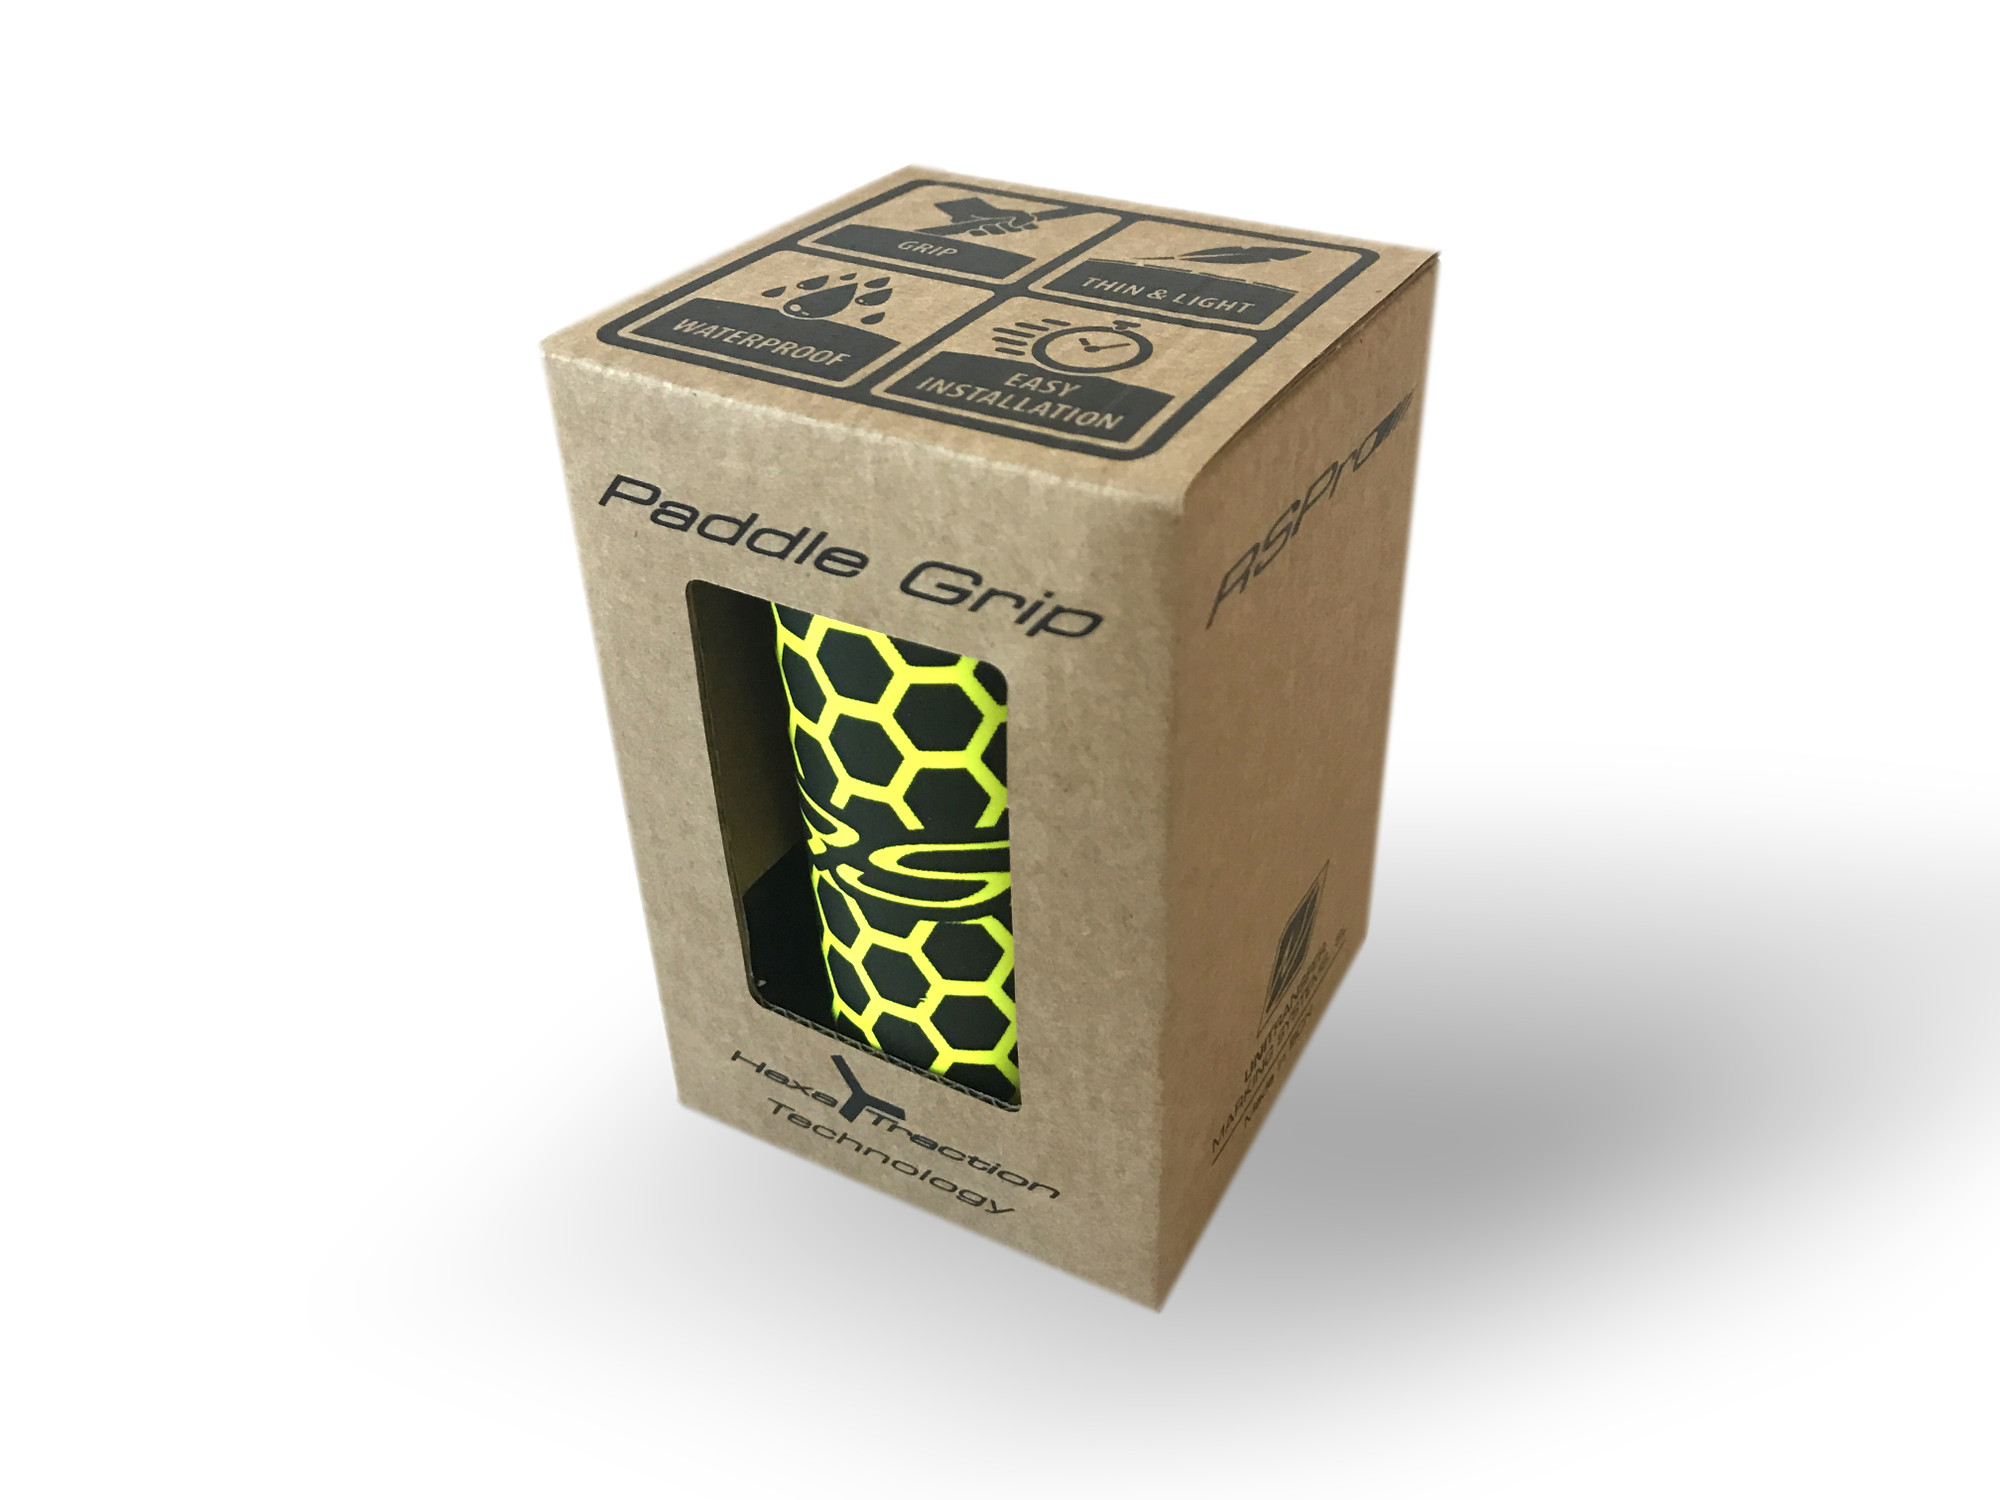 Paddle Grip RSPro Hexa Yellow Fluor packaging xweb